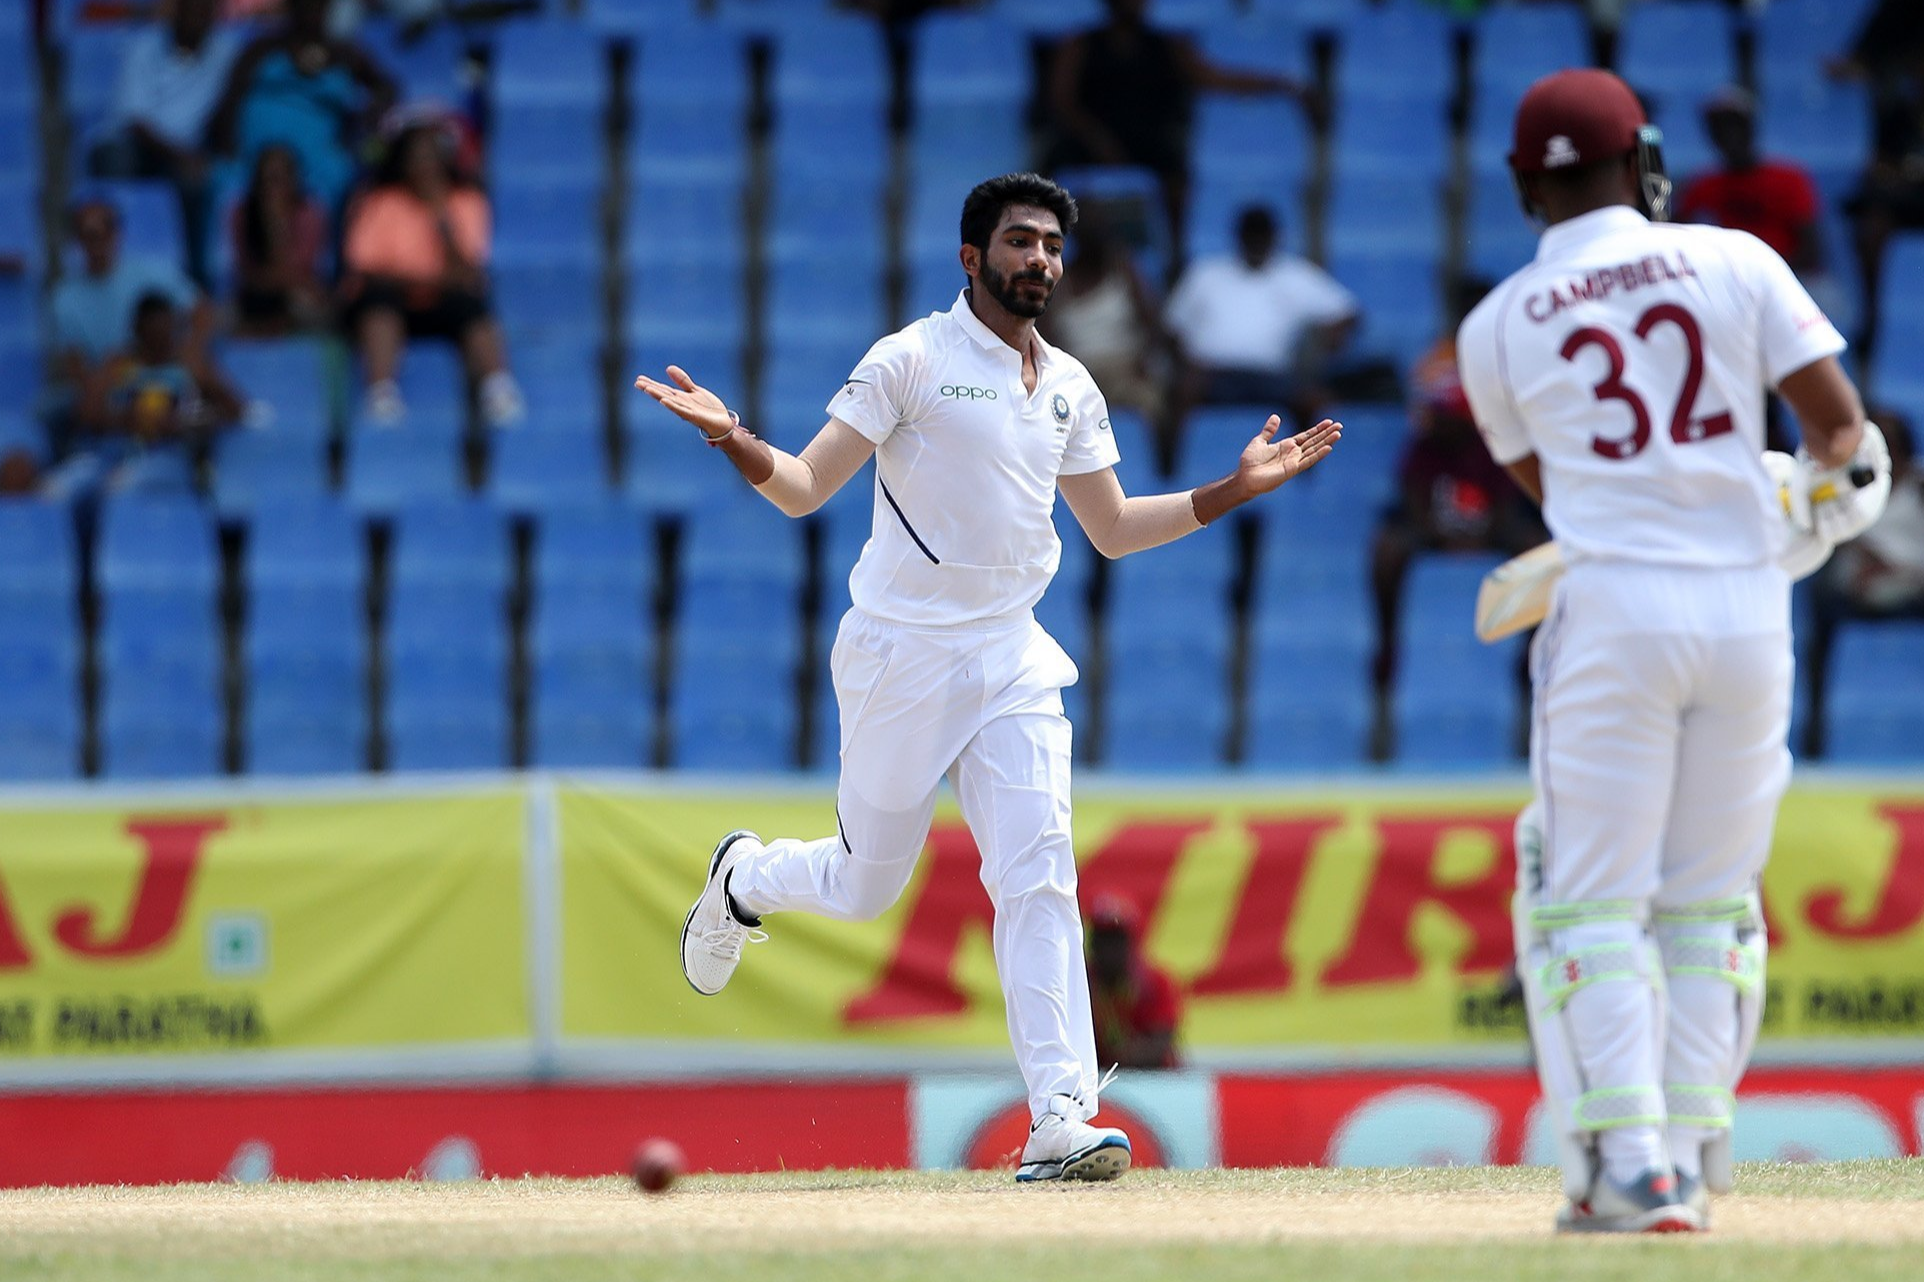 WI v IND: Bumrah and co blow away the stumps, and Windies